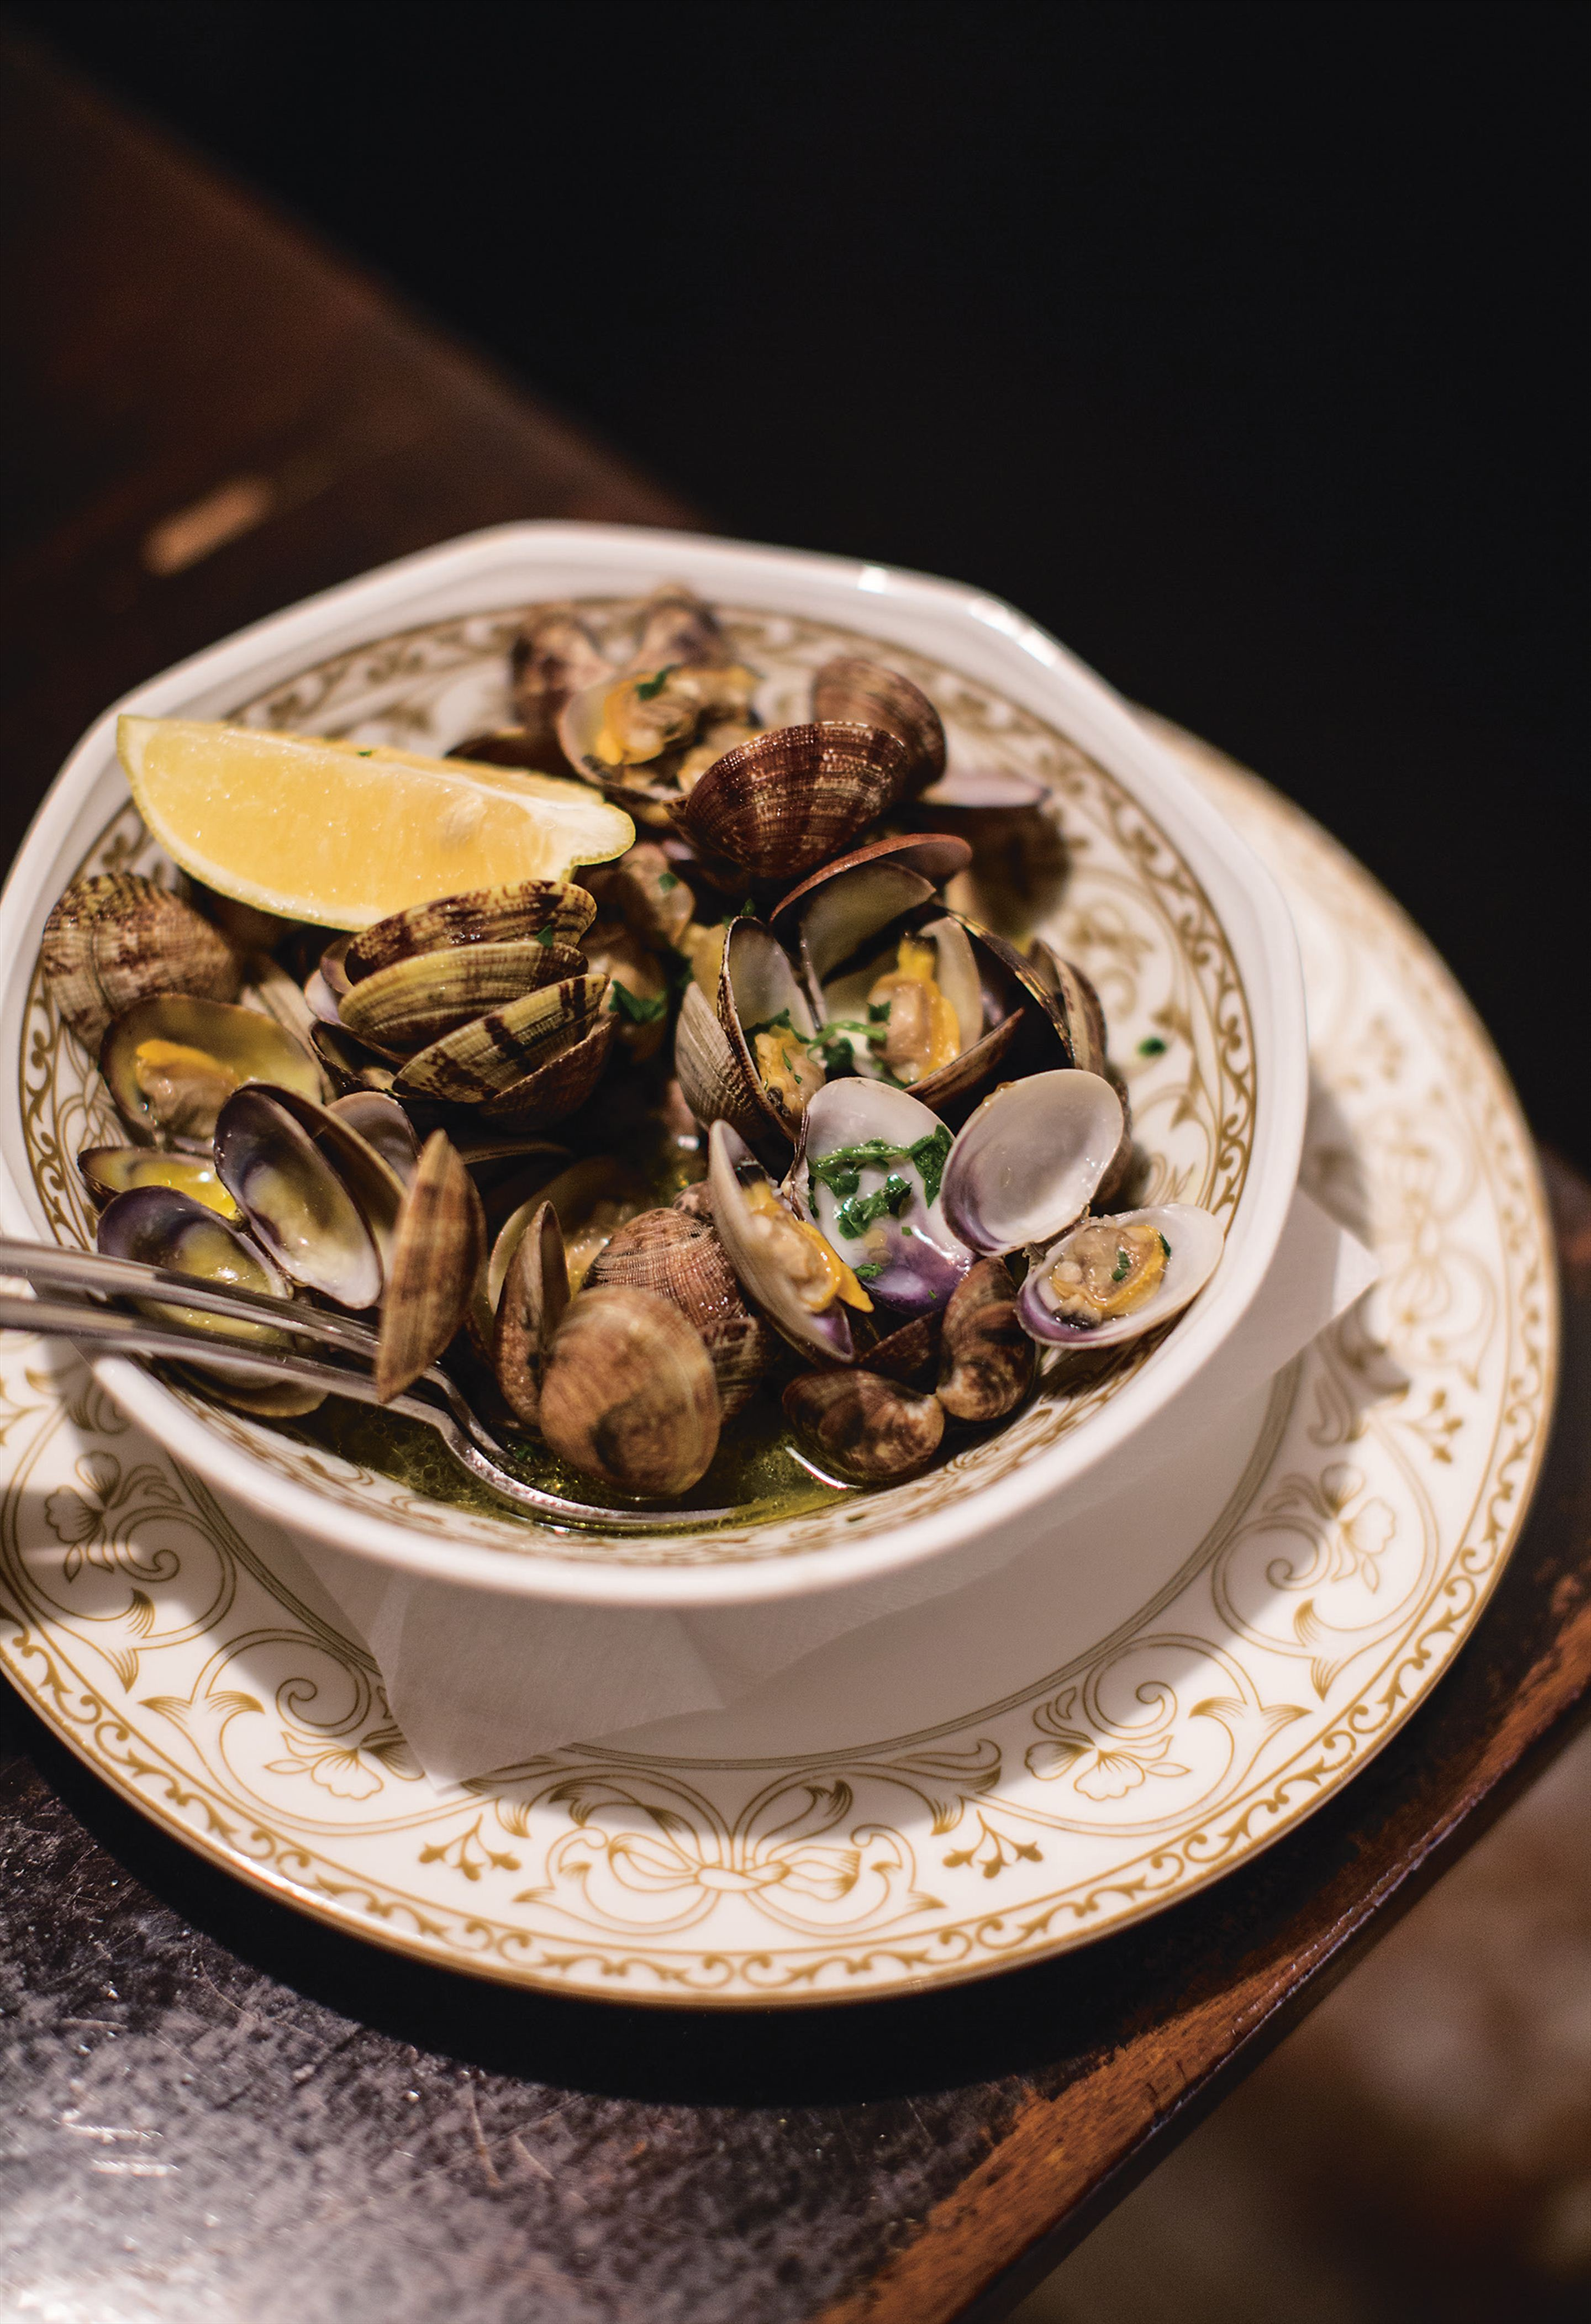 Clams in ginger broth